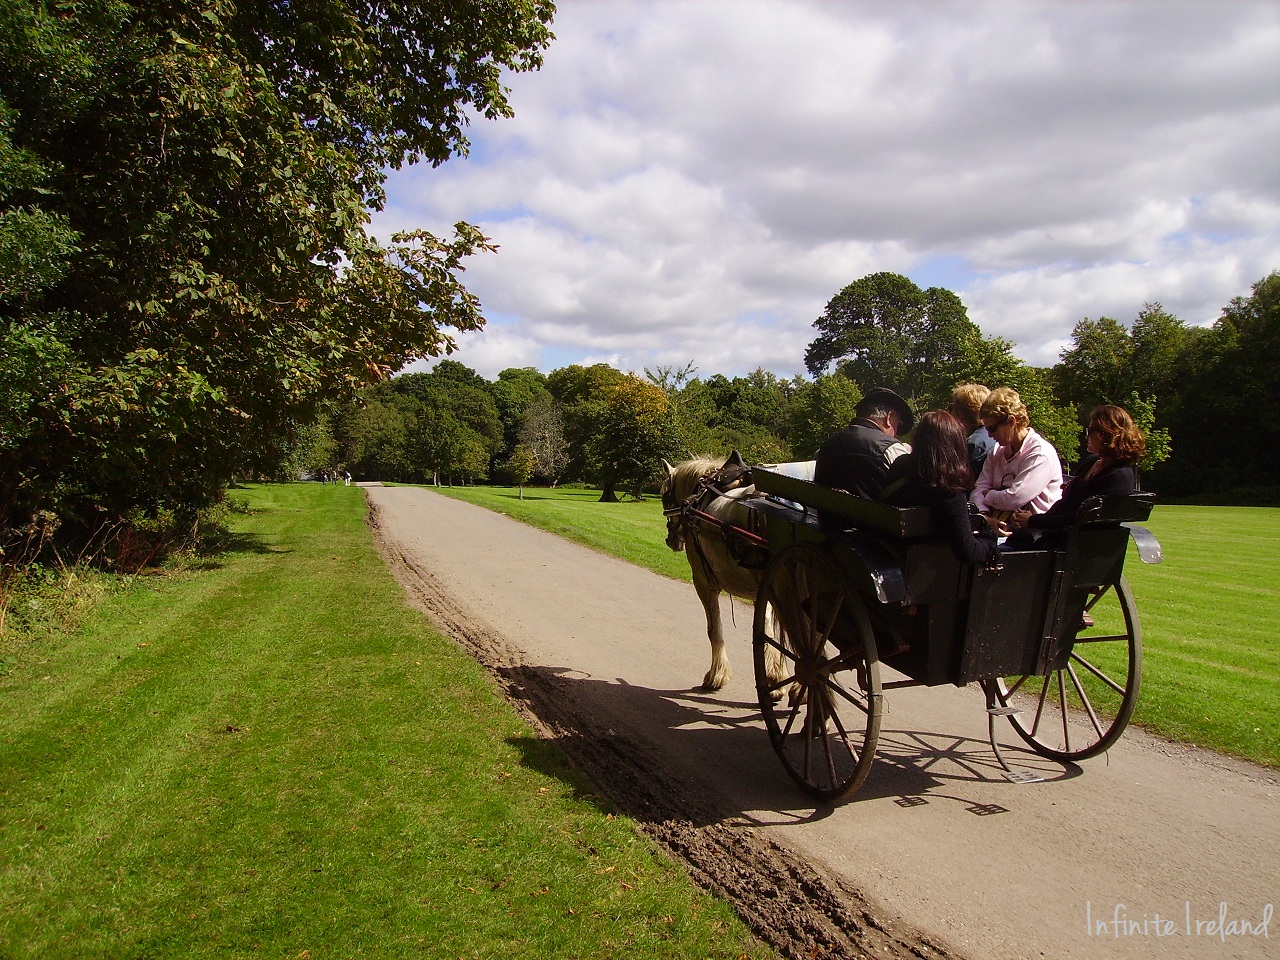 Horse and cart in killarney national park co kerry